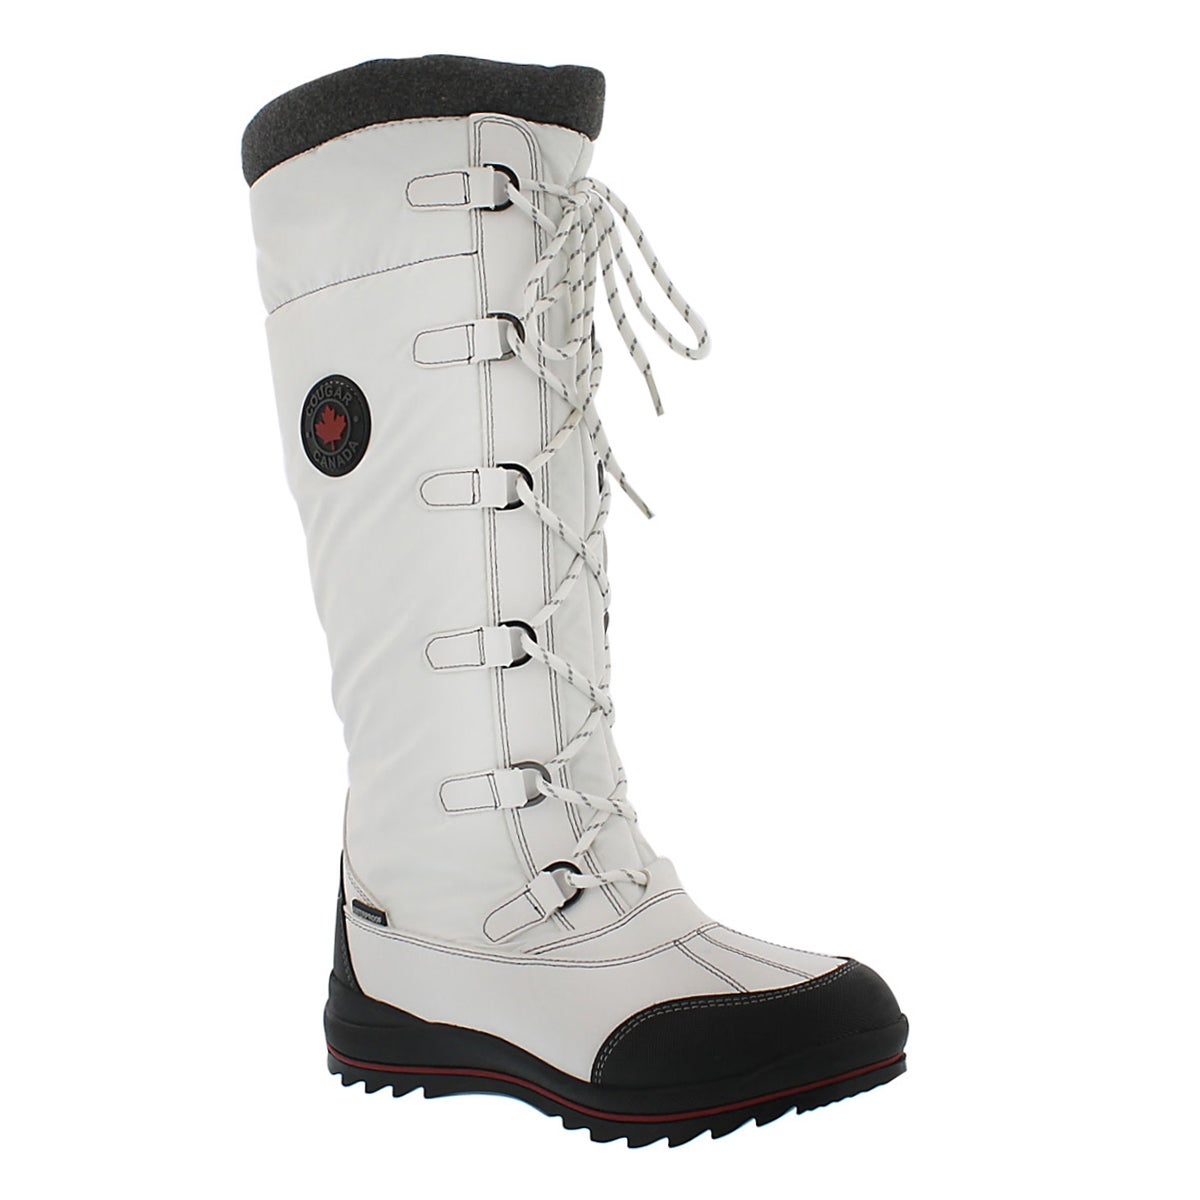 Women's CANUCK waterproof pull on winter boots